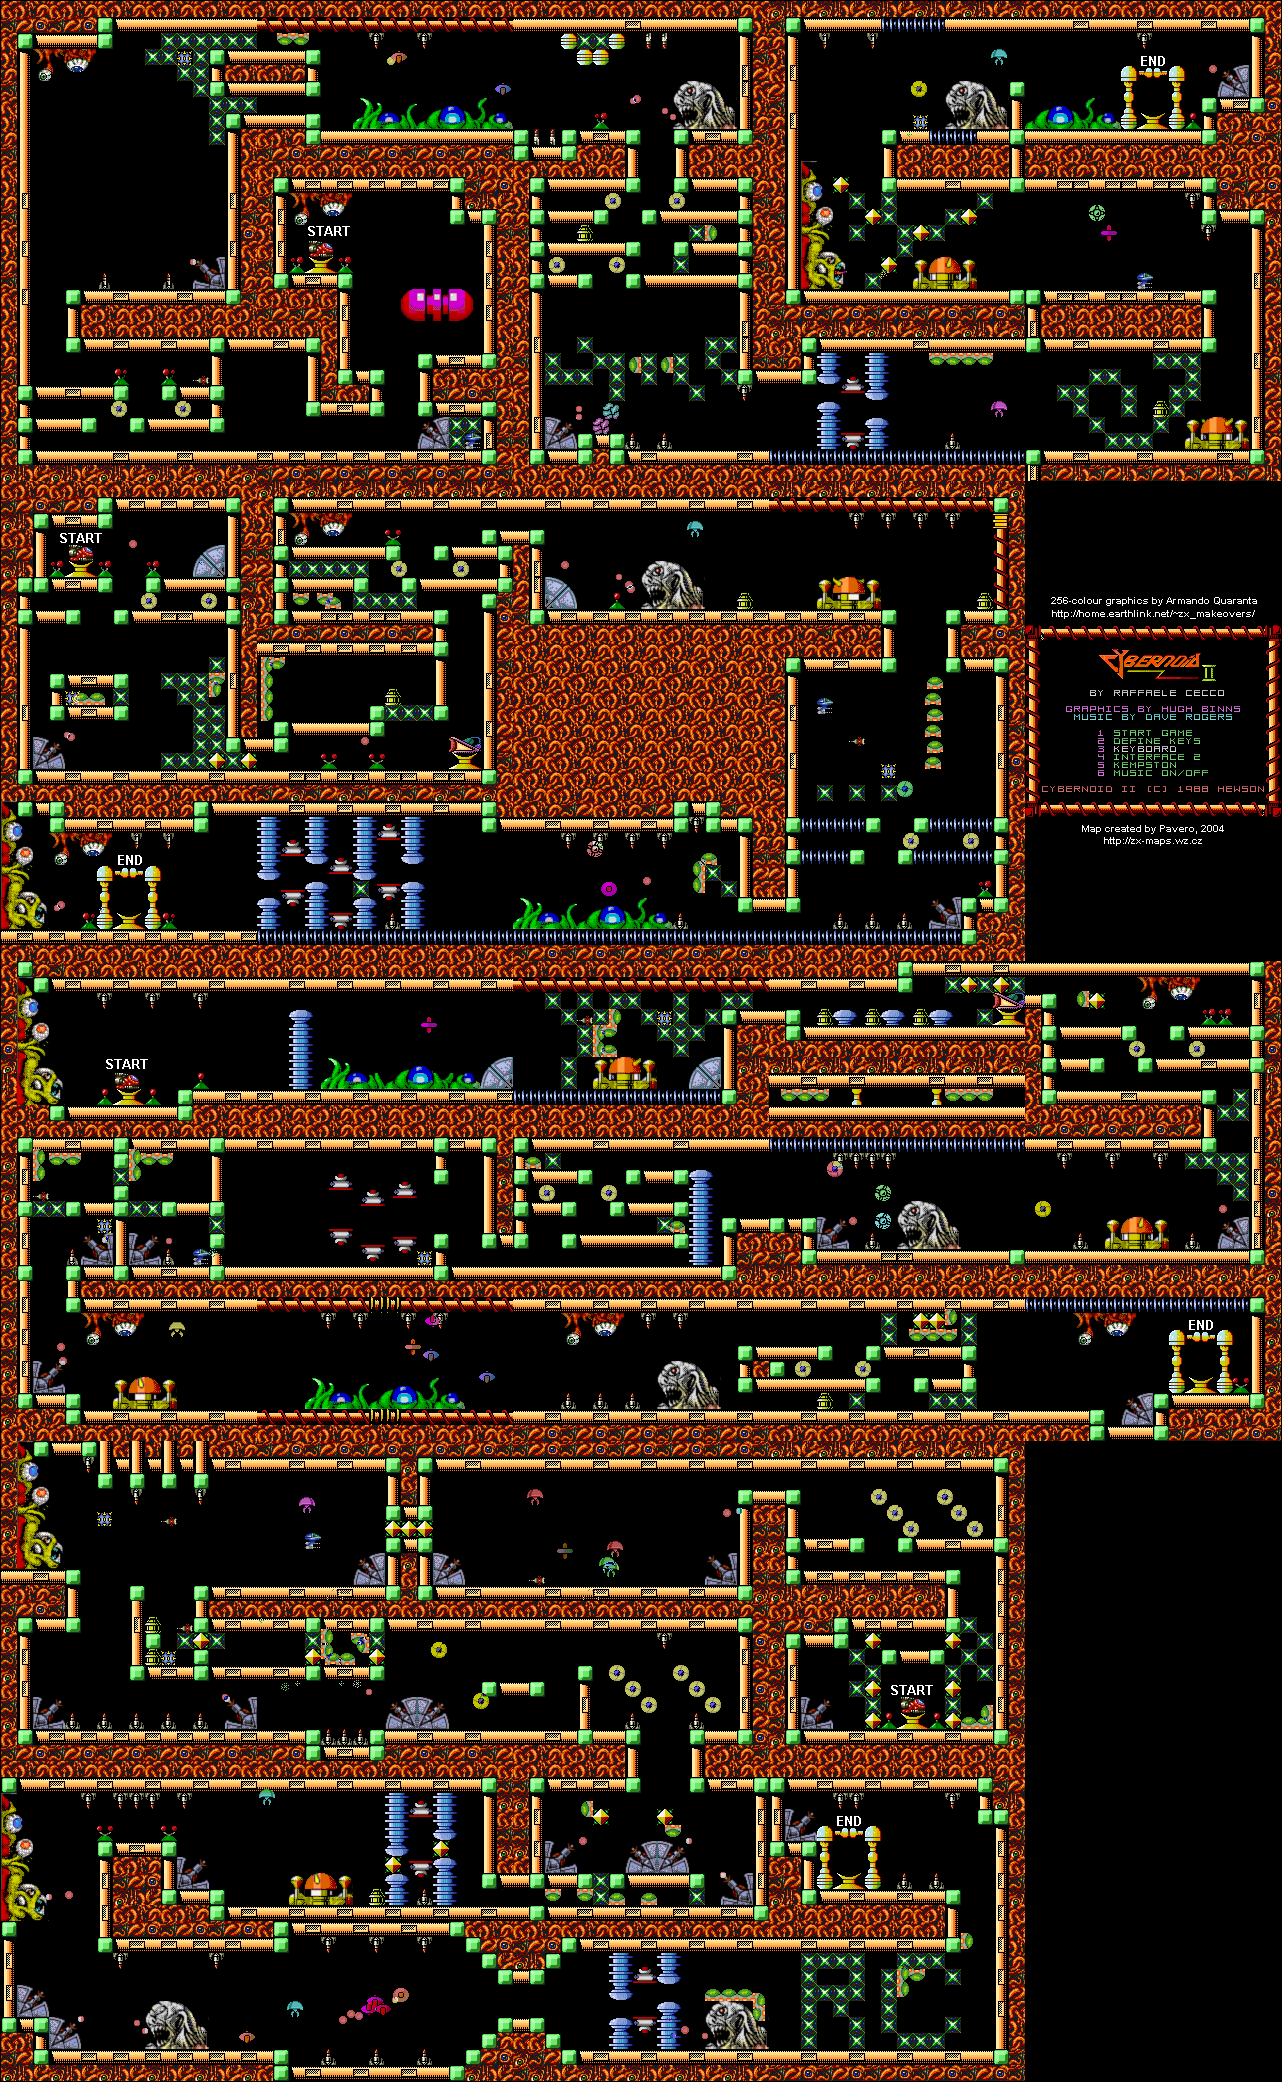 Cybernoid 2 - The Revenge (256 colours) - The Map